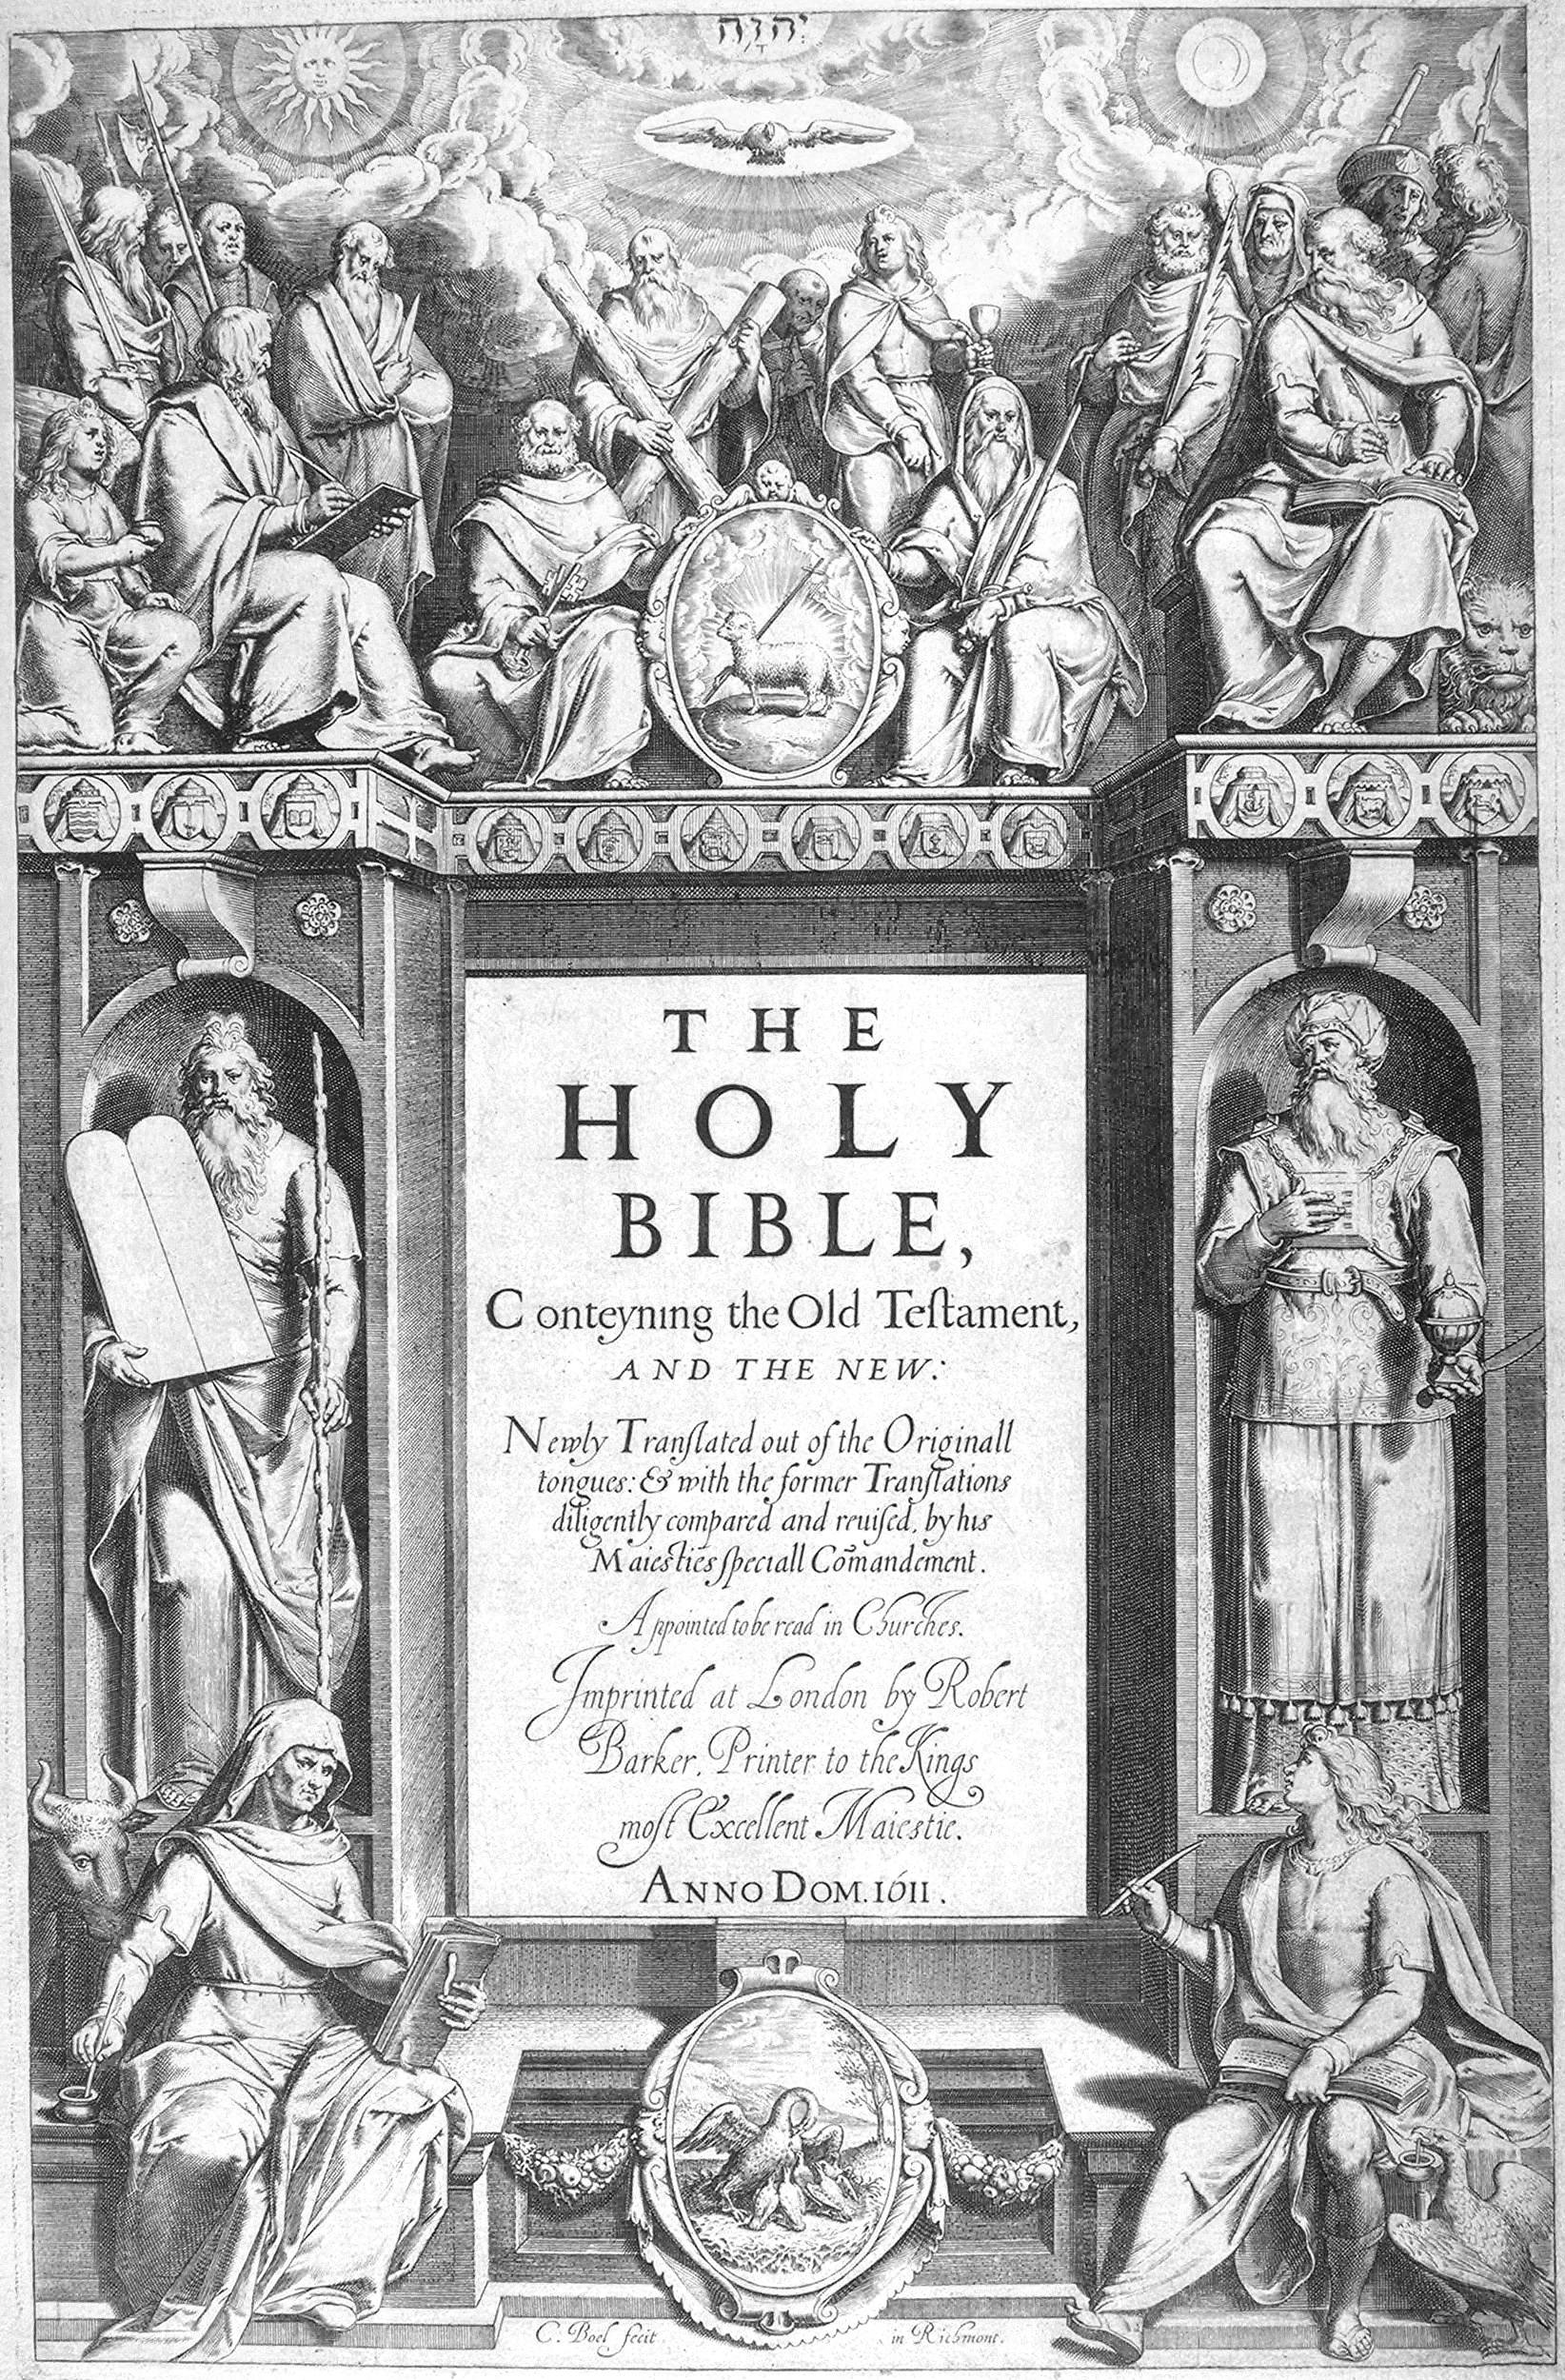 The Story of the King James Bible | Pue's Occurrences